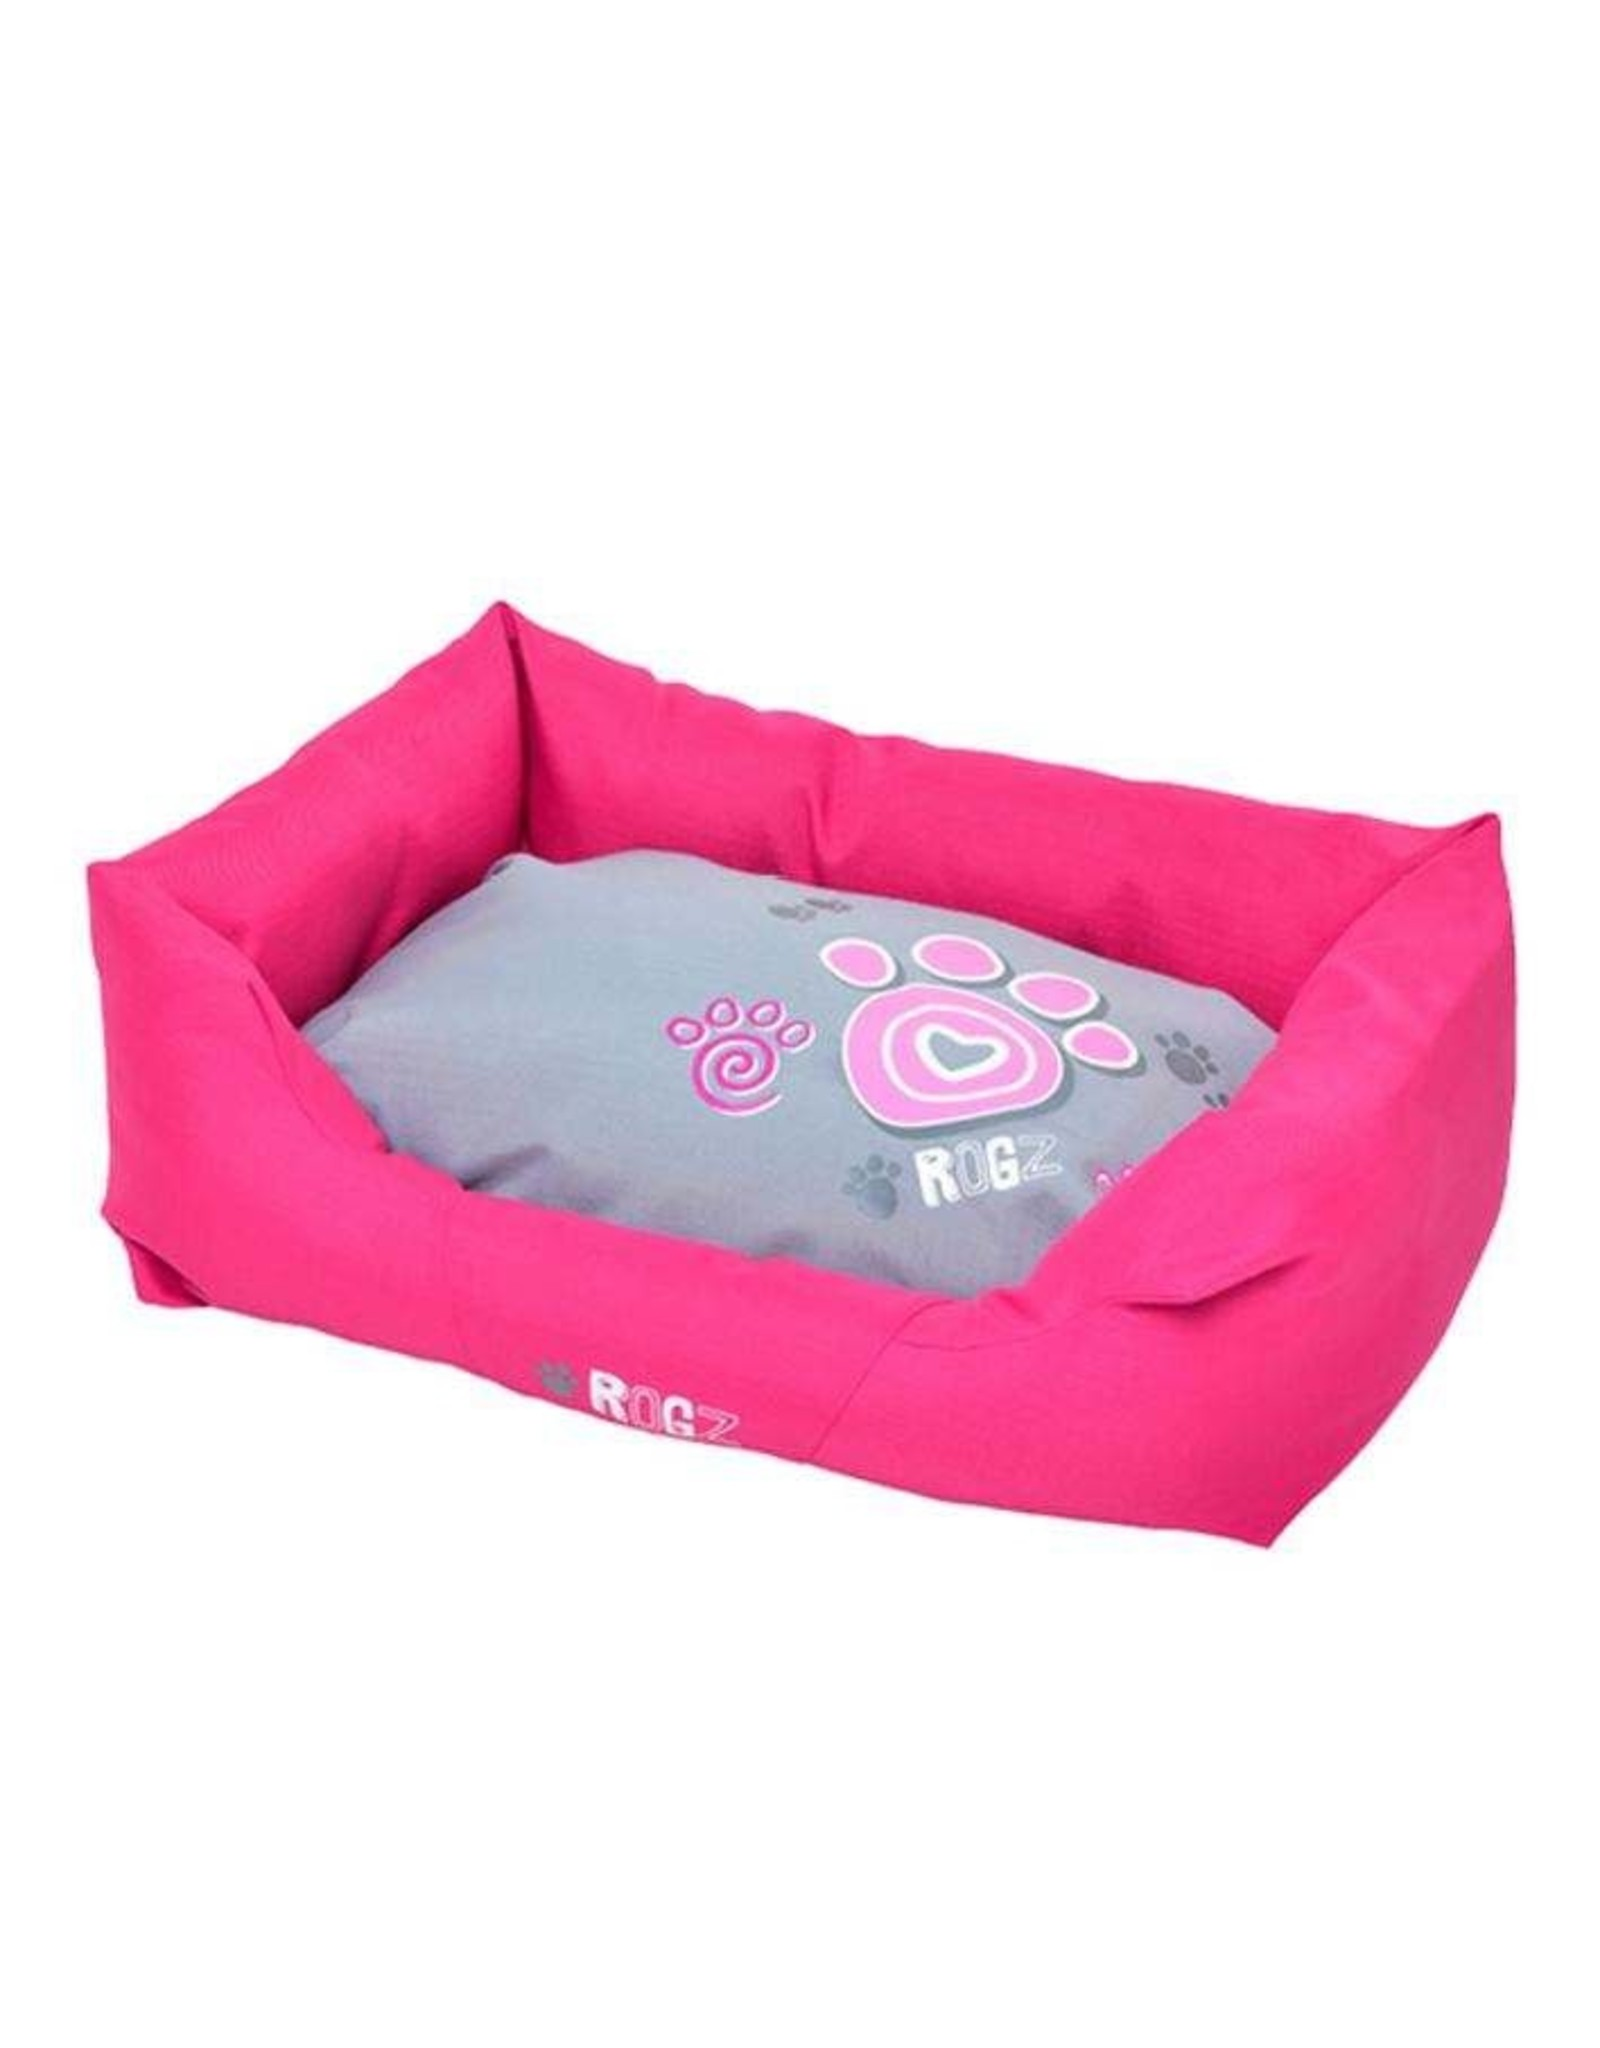 "Rogz Wall Podz - Pink Paw - Medium - 28"" x 18"" x 10"""